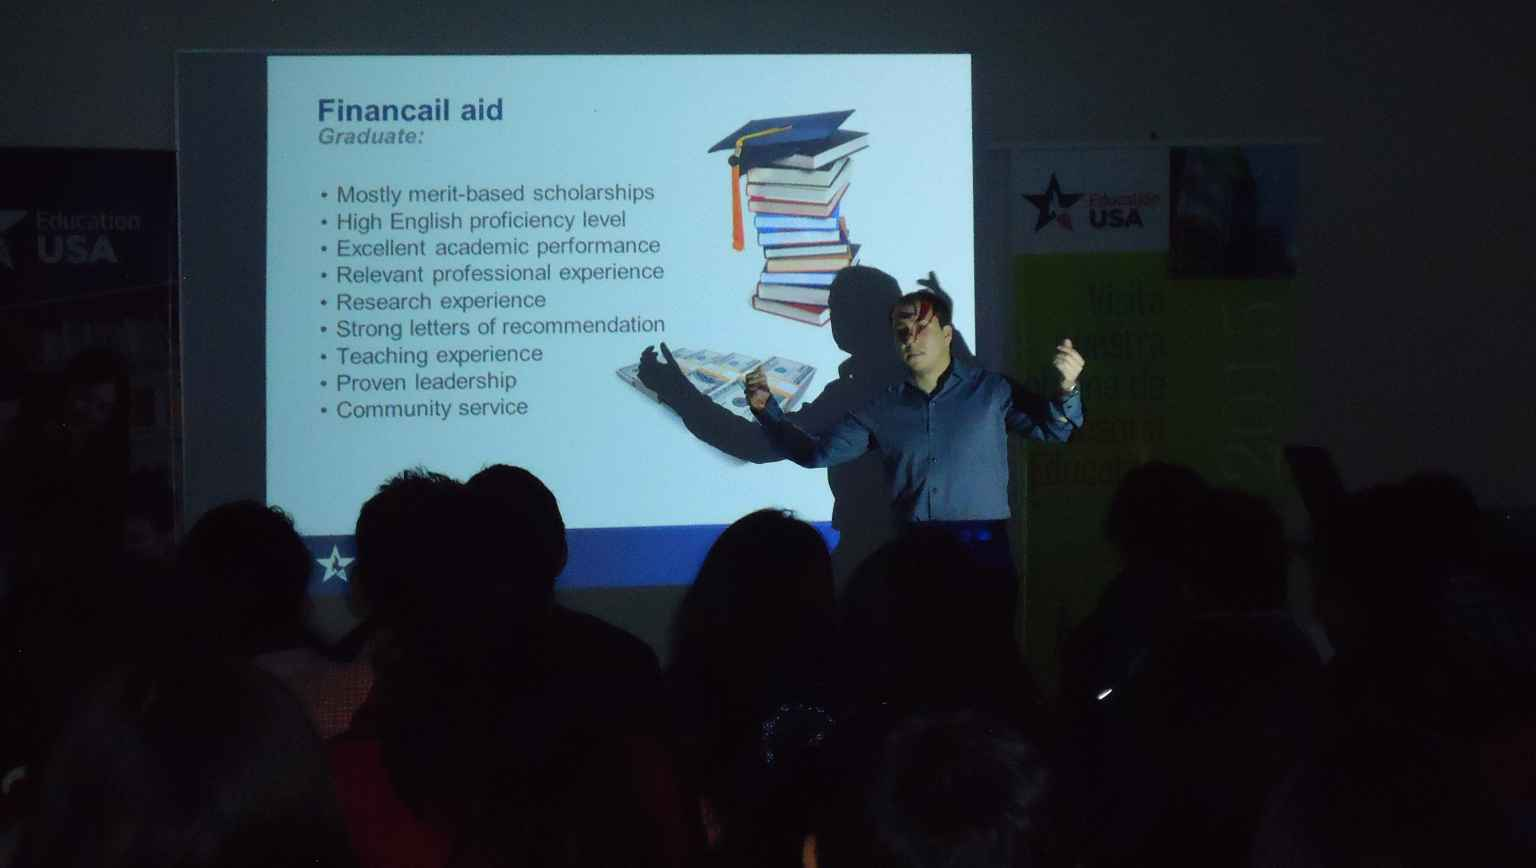 How to finance your U.S. education presentation